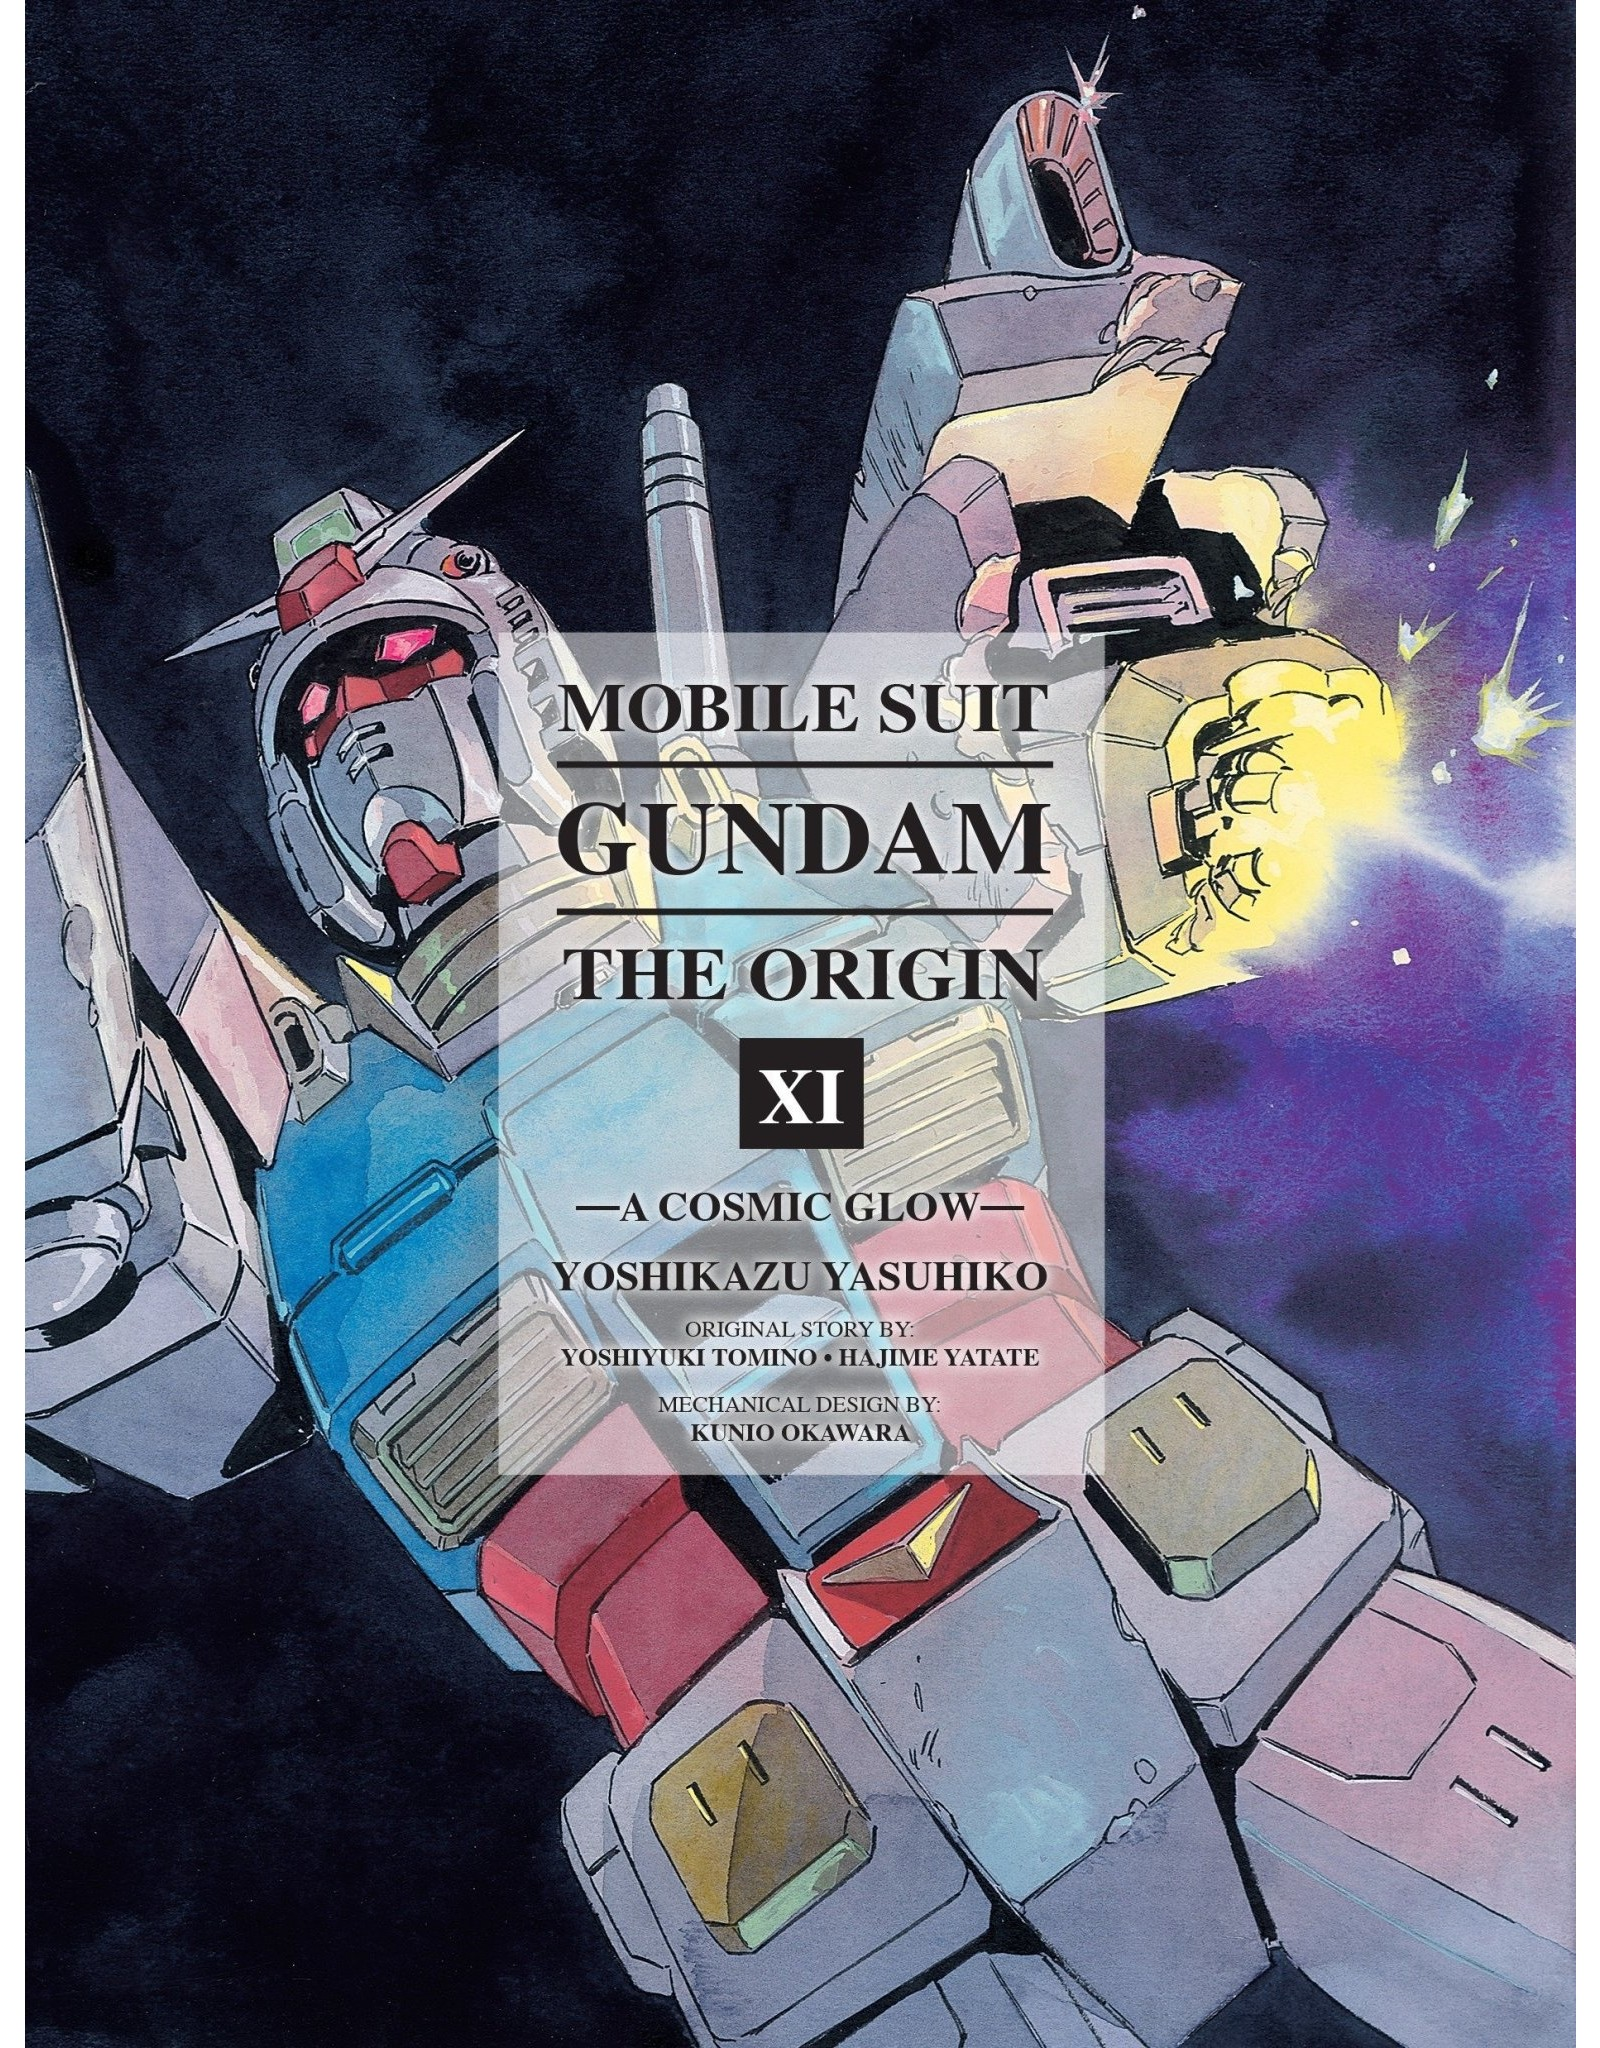 Mobile Suit Gundam: The Origin XI (English Version)